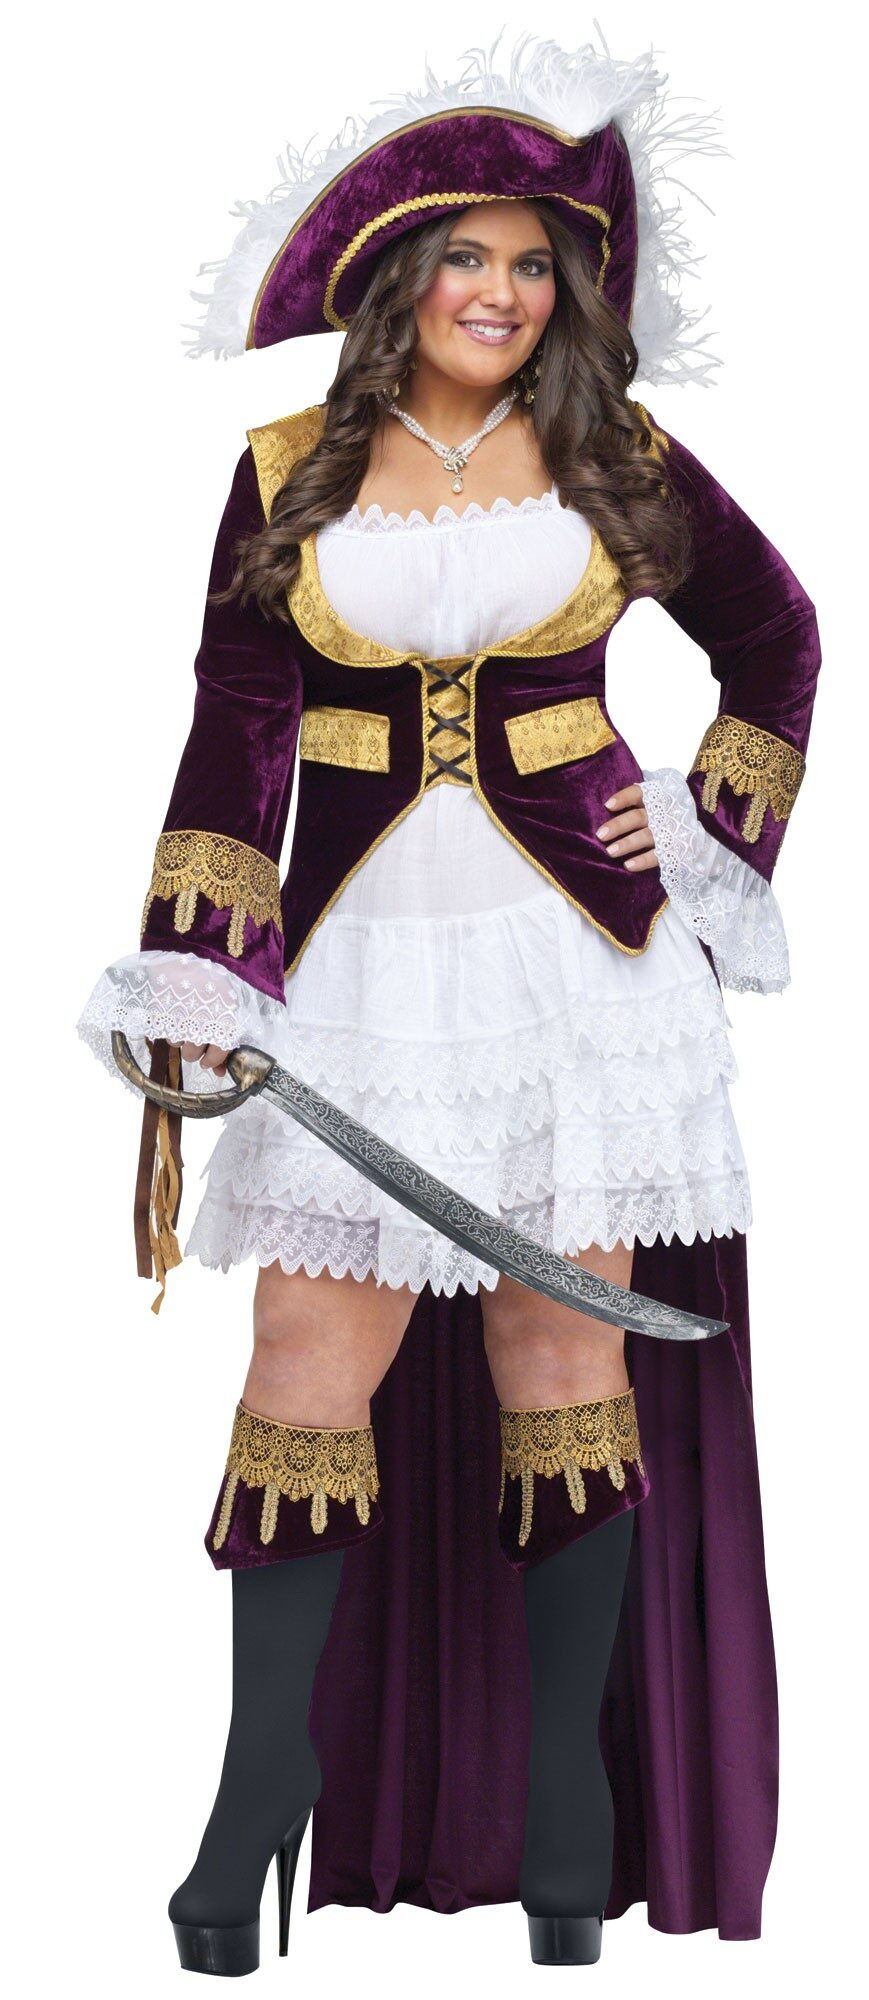 sc 1 st  Mr. Costumes & Caribbean Queen Pirate Plus Size Costume - Mr. Costumes